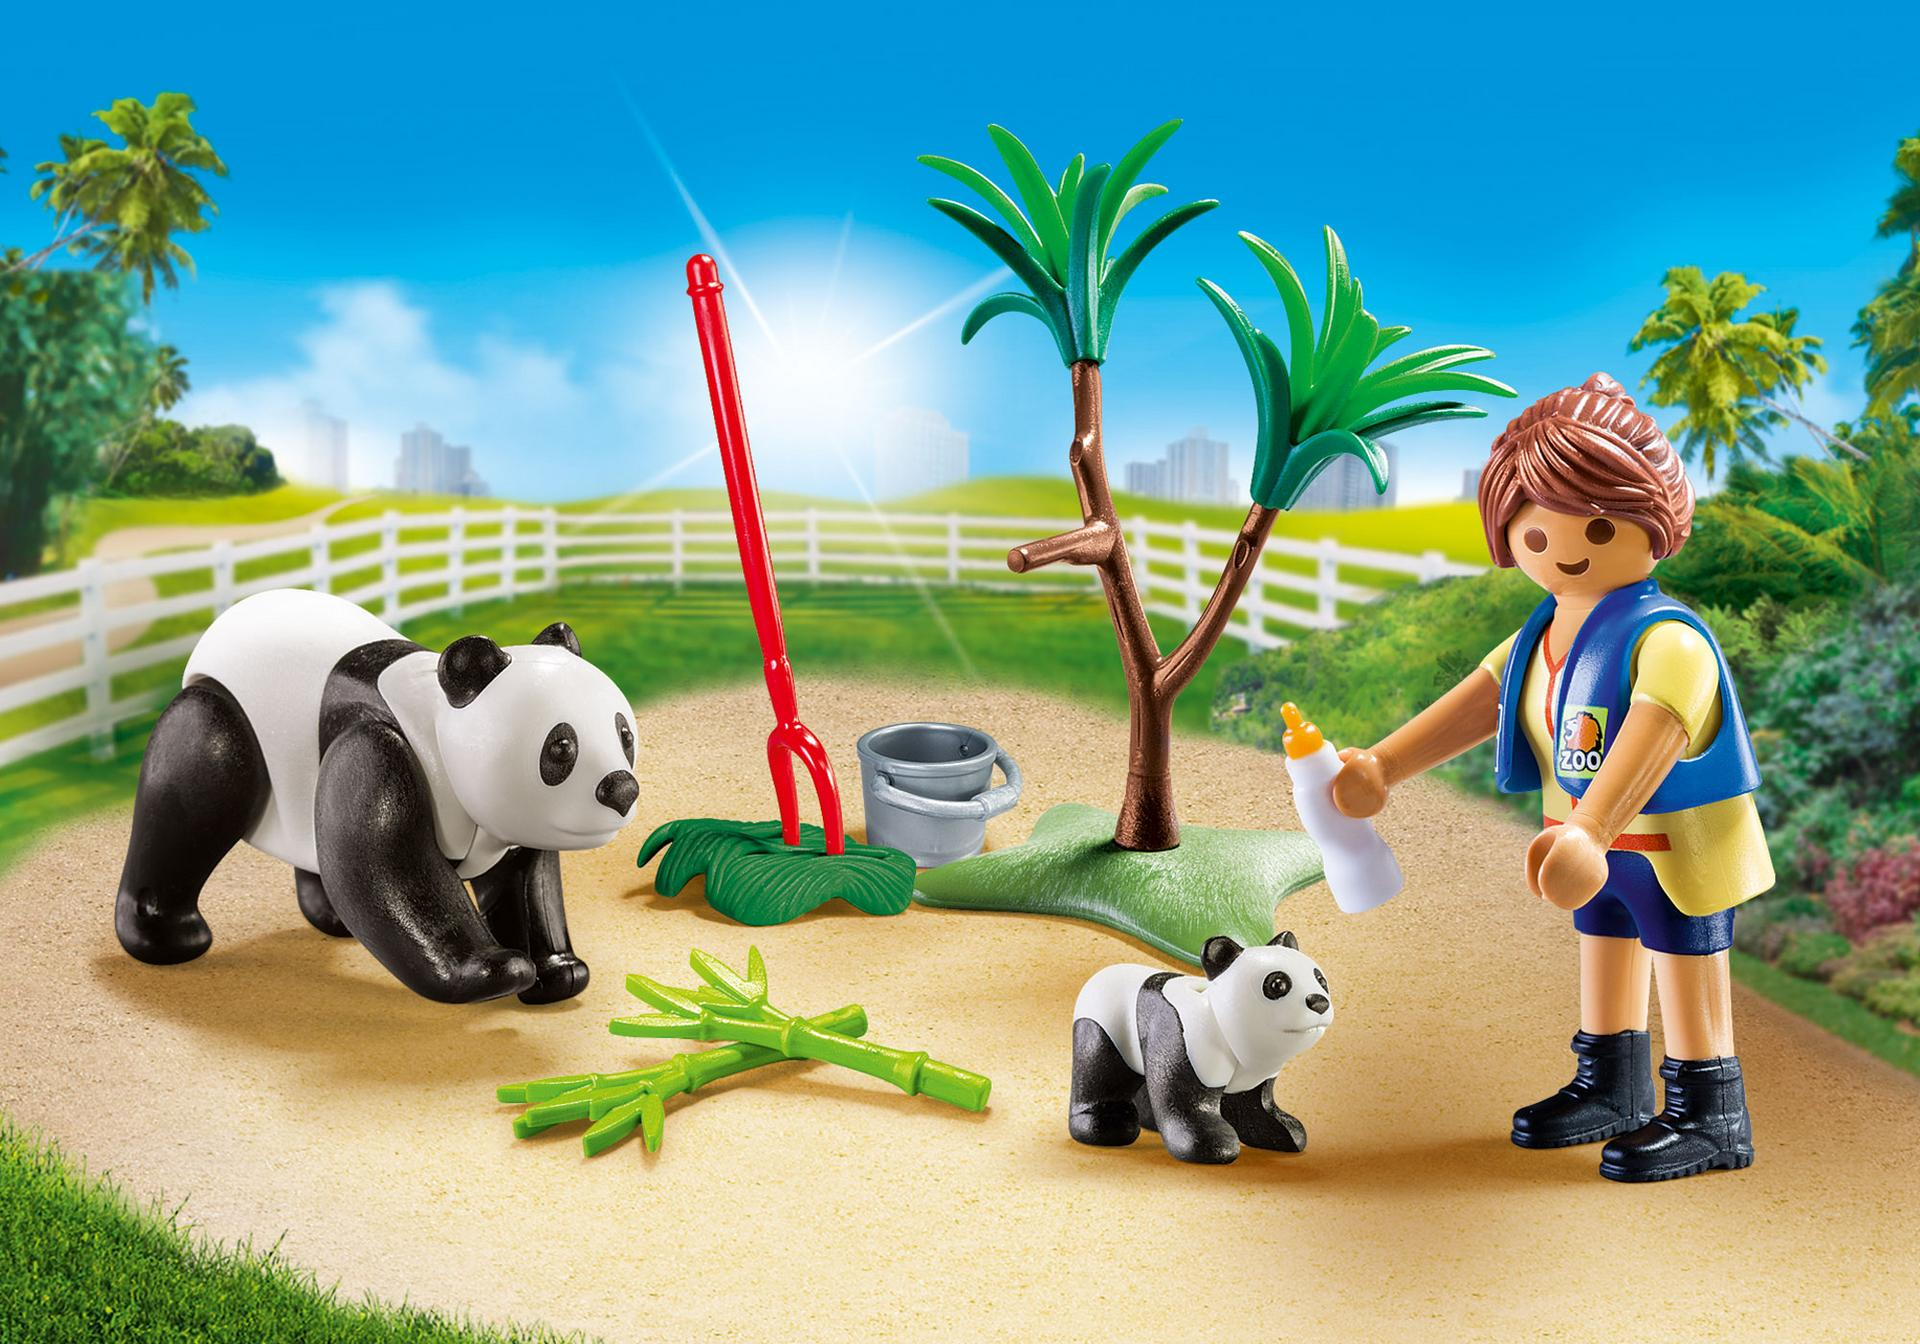 Playmobil #70105 Panda Caretaker Carry Case - New Factory Sealed